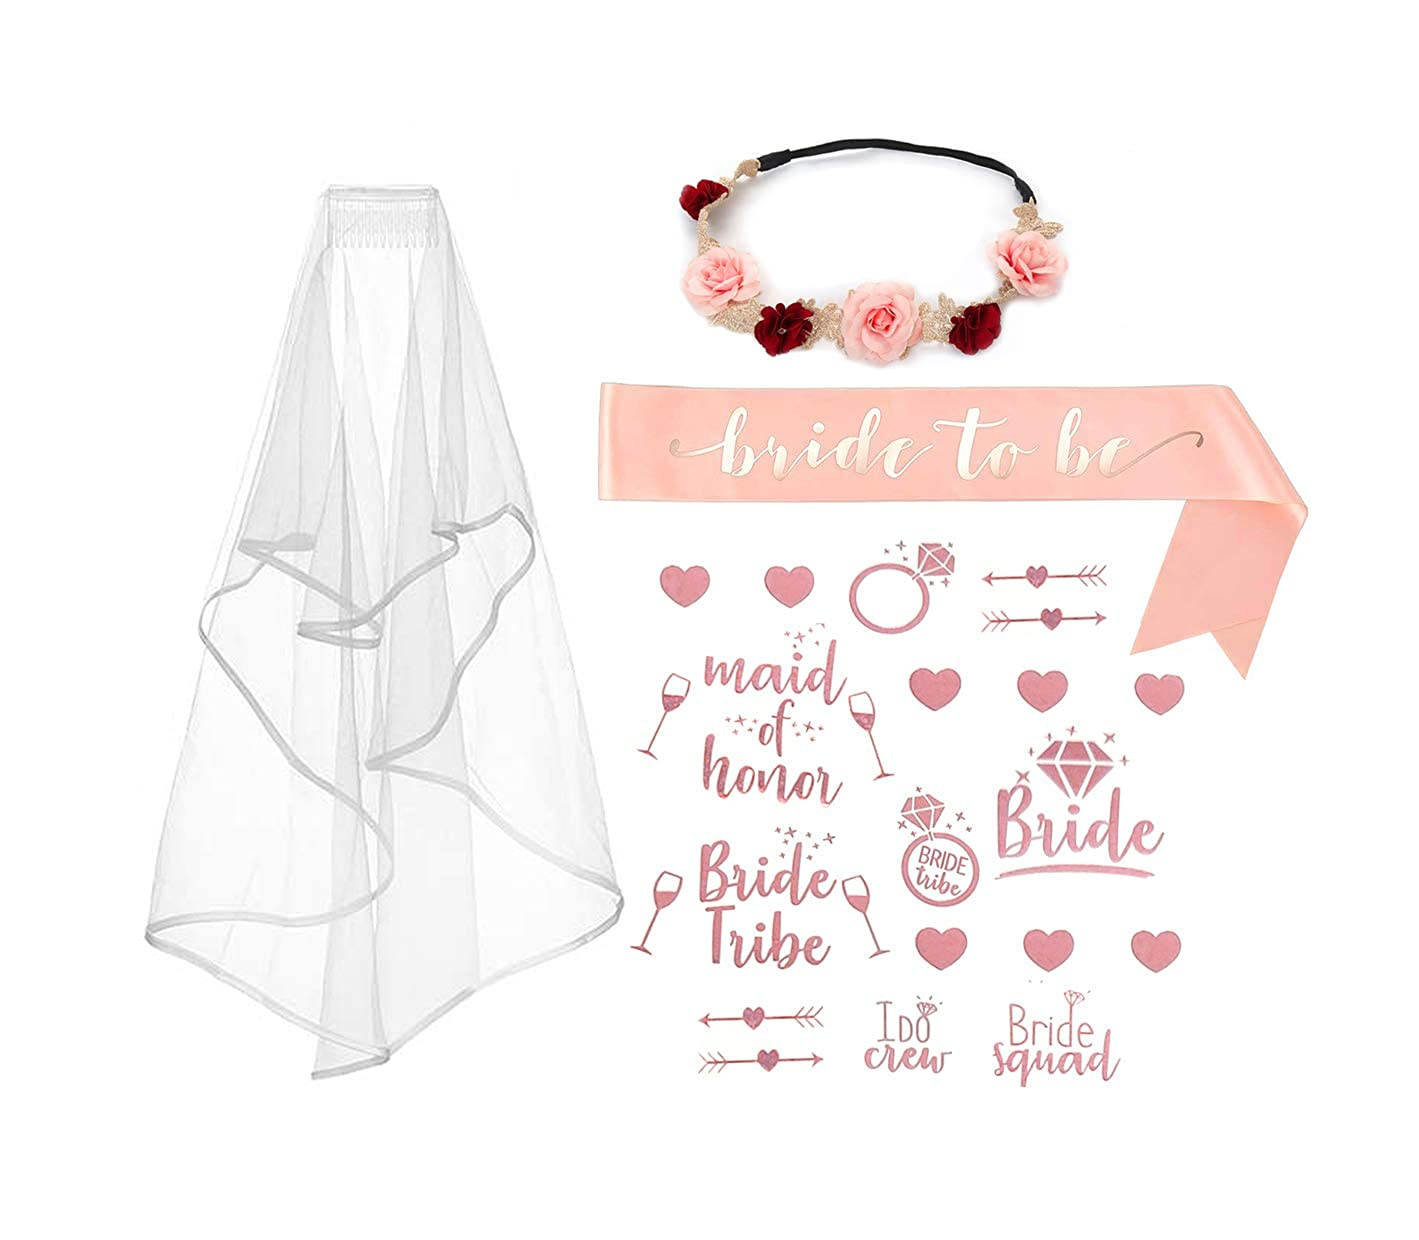 The Bride Hen Night Bachelorette Bridal Shower UK Party 2019 Pink